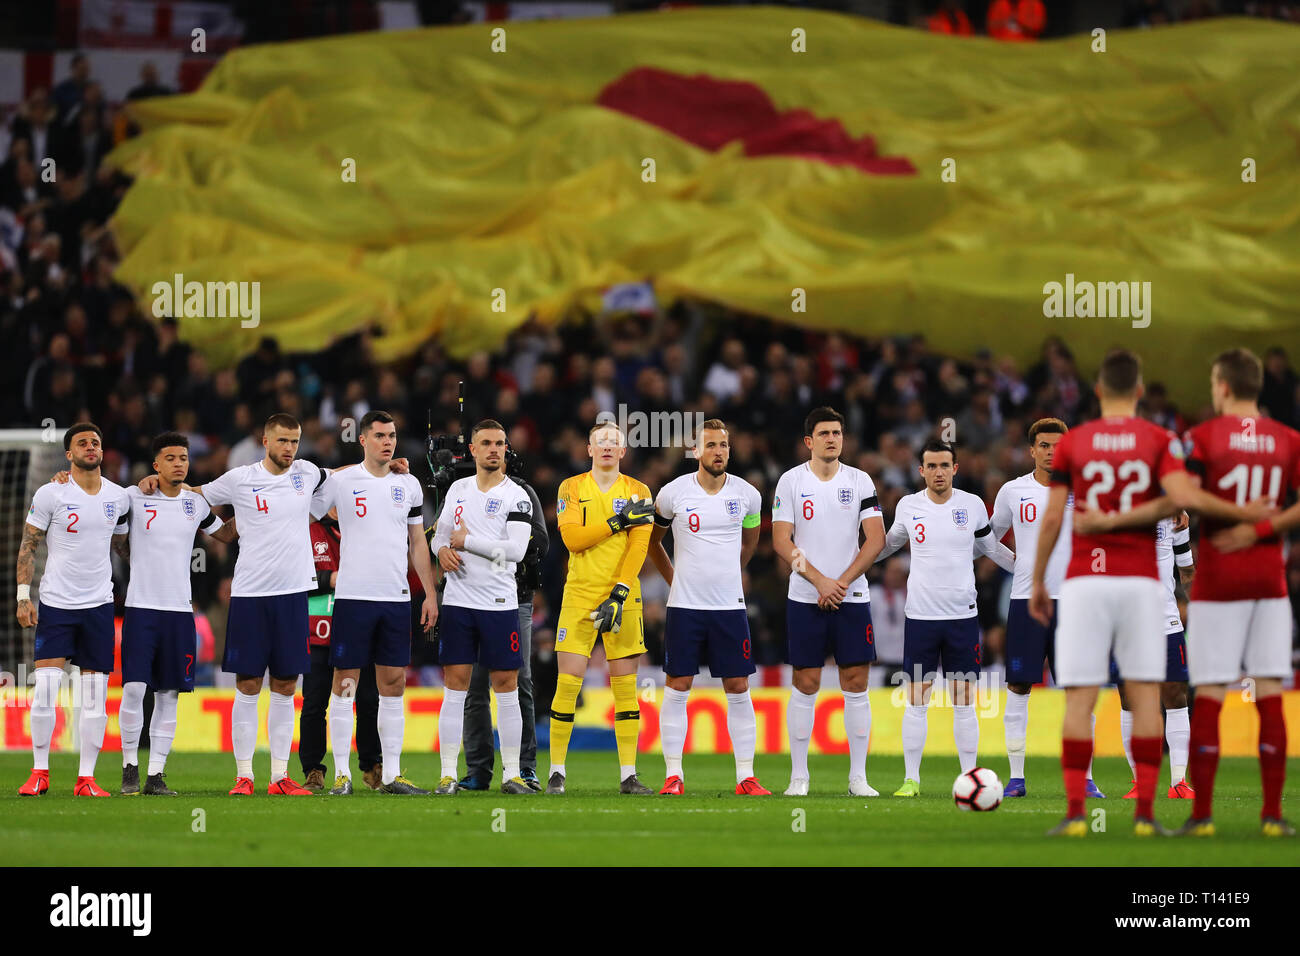 Players line up for minutes applause in respect of Gordon Banks OBE - England v Czech Republic, UEFA Euro 2020 Qualifier - Group A, Wembley Stadium, London - 22nd March 2019  Editorial Use Only - Stock Image